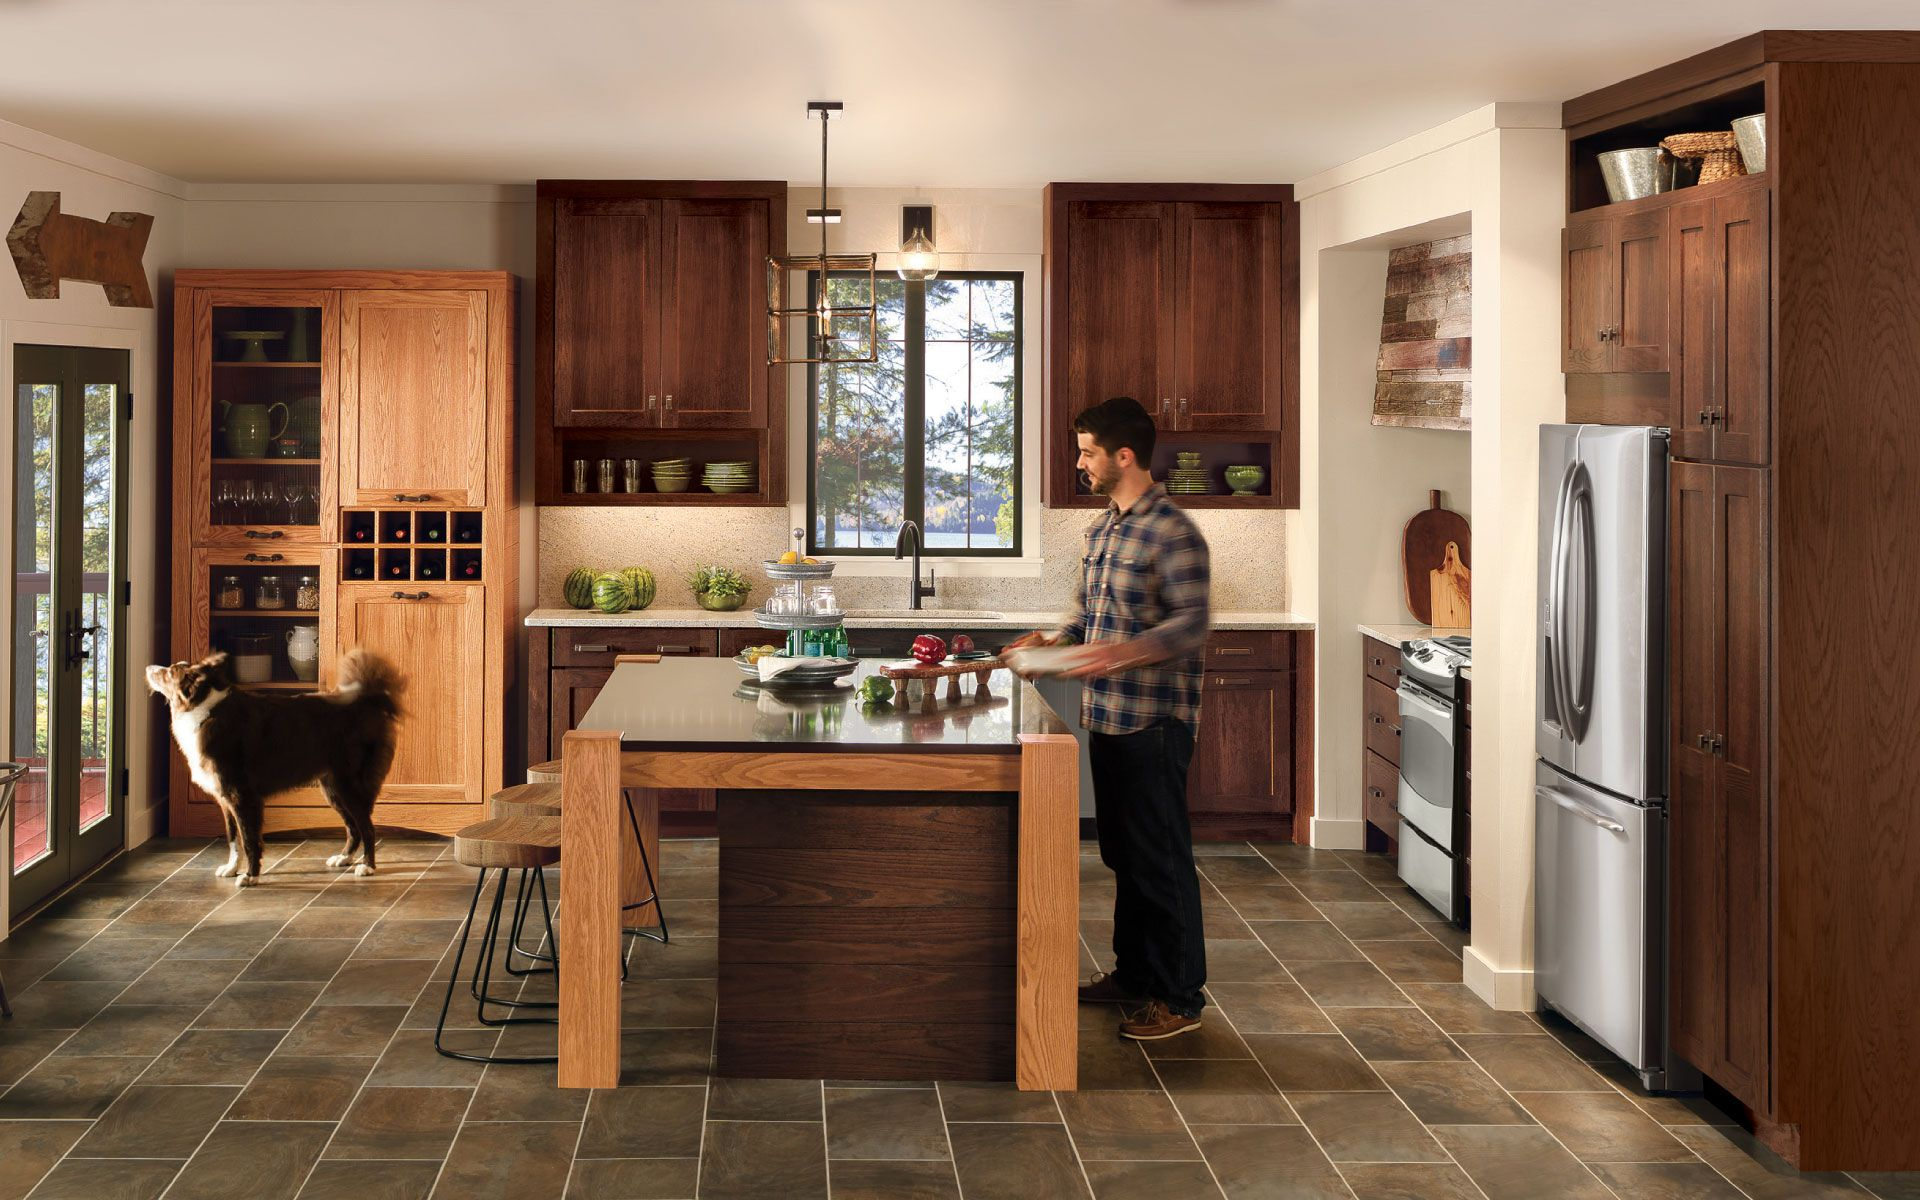 Home Mc T Construction Llc With Merillat Cabinetry Kitchen Design Trends Kitchen Design Kitchen Trends